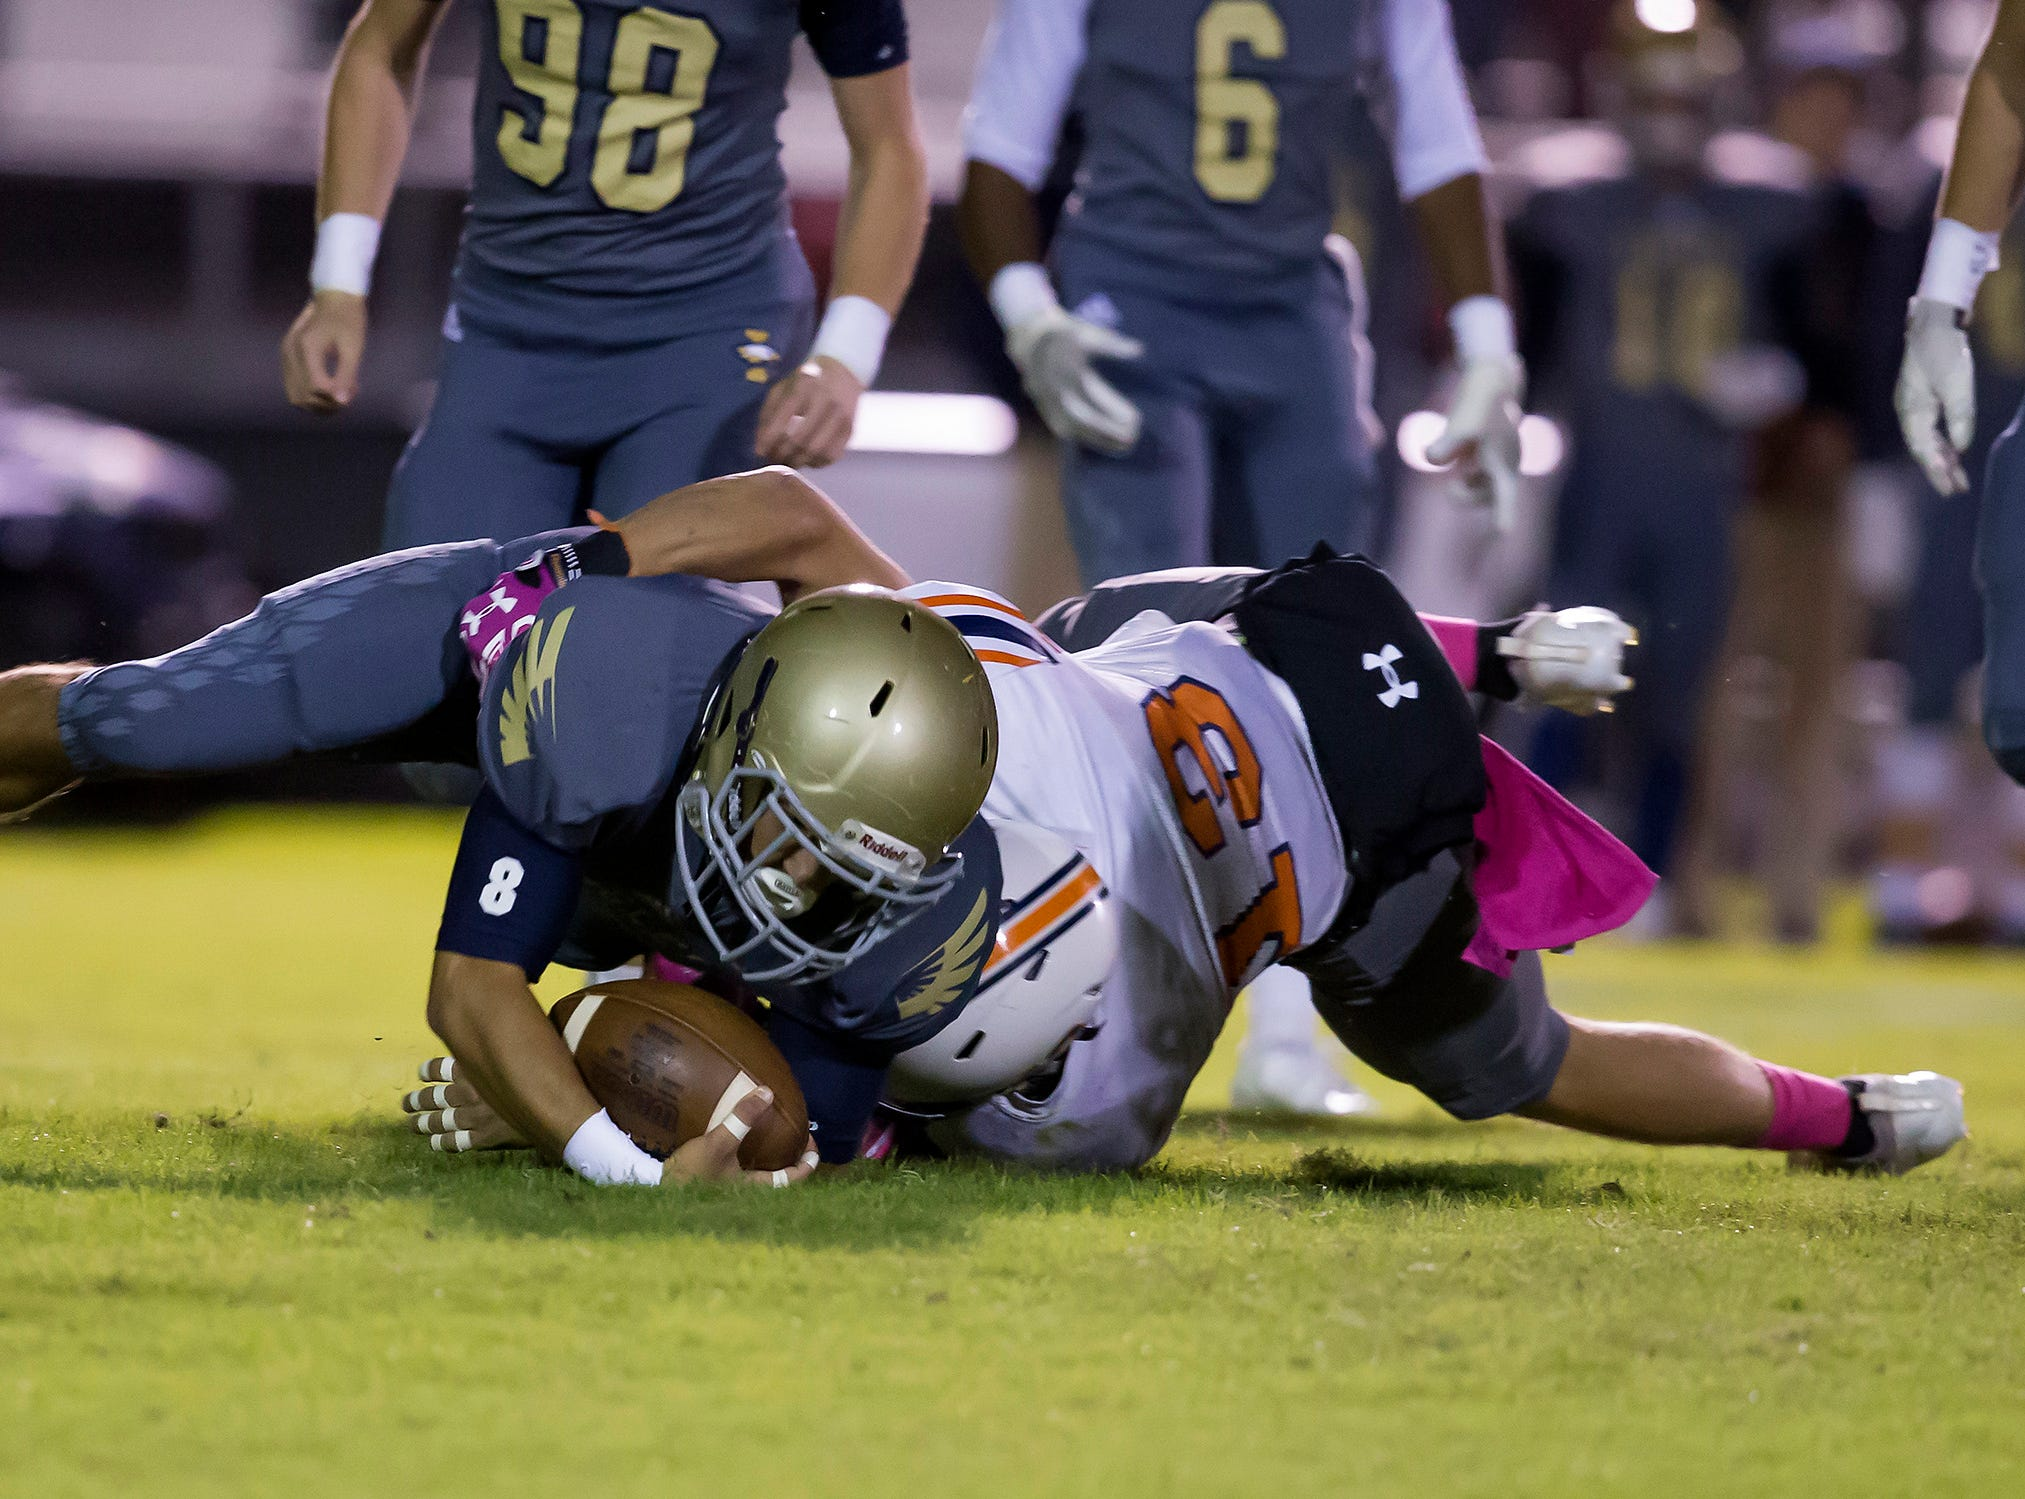 Independence's Jake Huner is tackled by Dickson County's Stewart Conner.